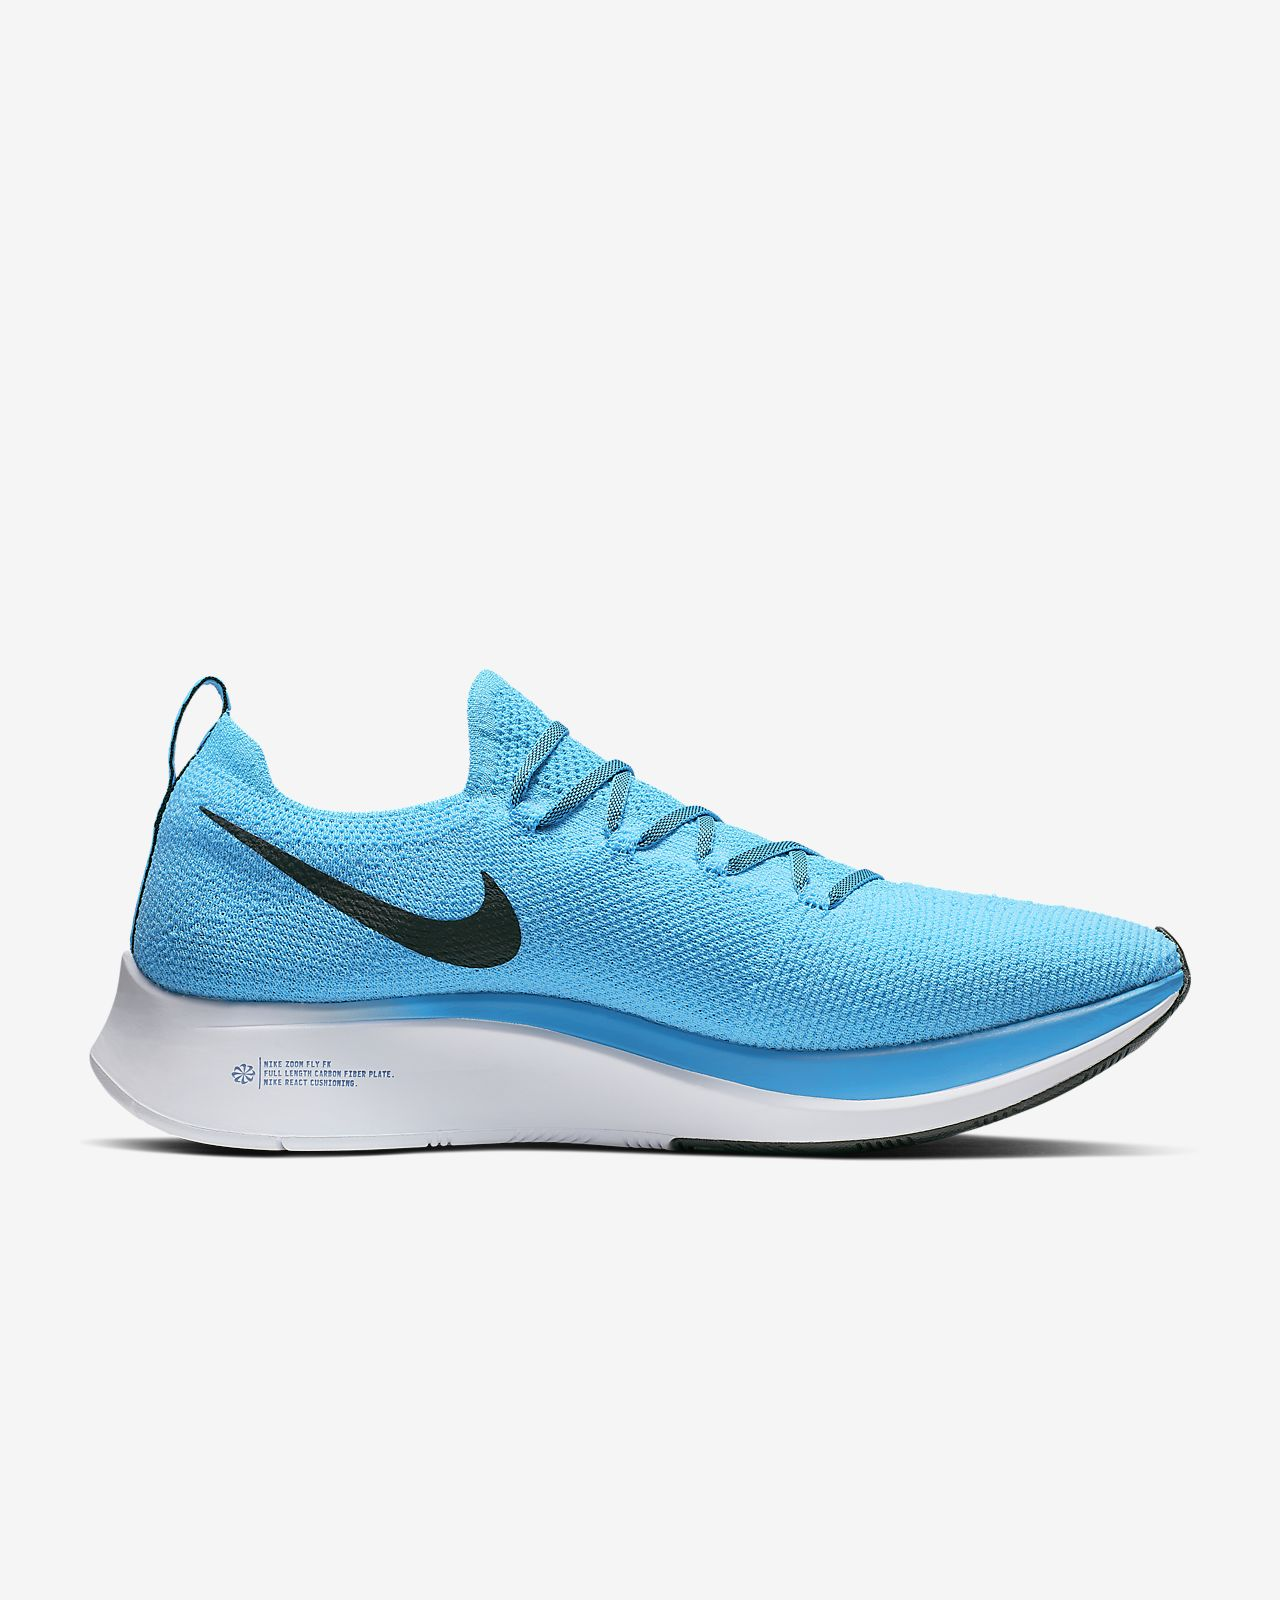 a89c549f0499 Nike Zoom Fly Flyknit Men s Running Shoe. Nike.com CA